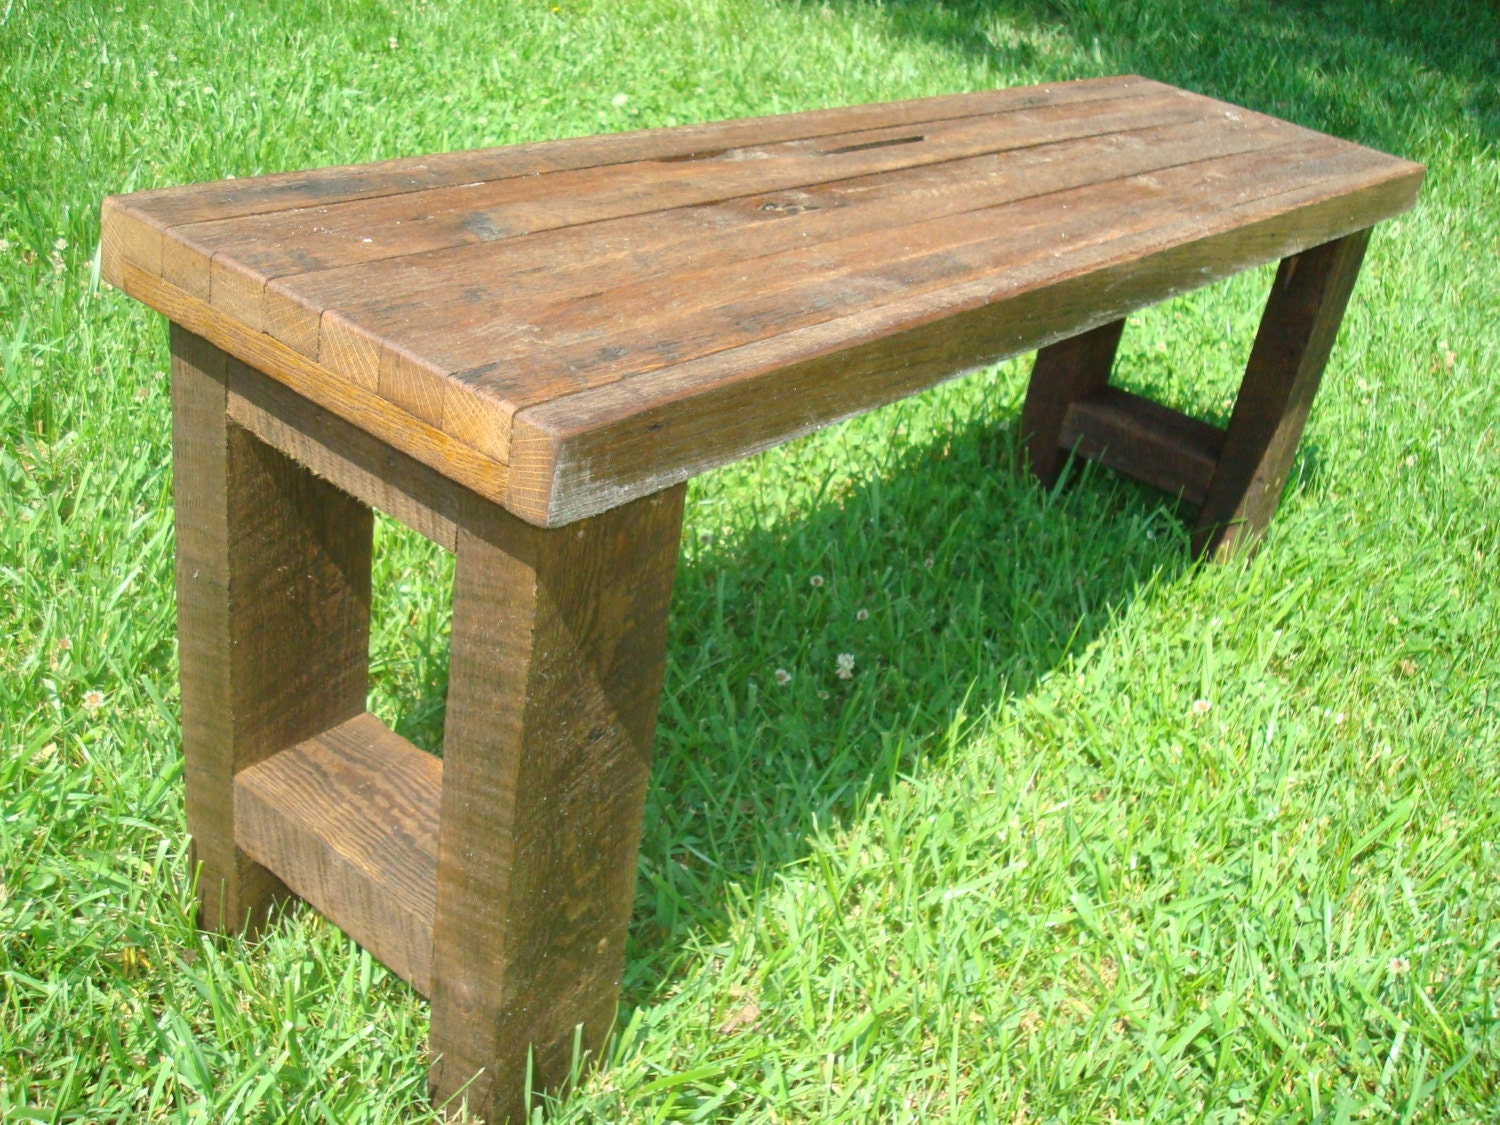 Bench wood gnarly rustic reclaimed